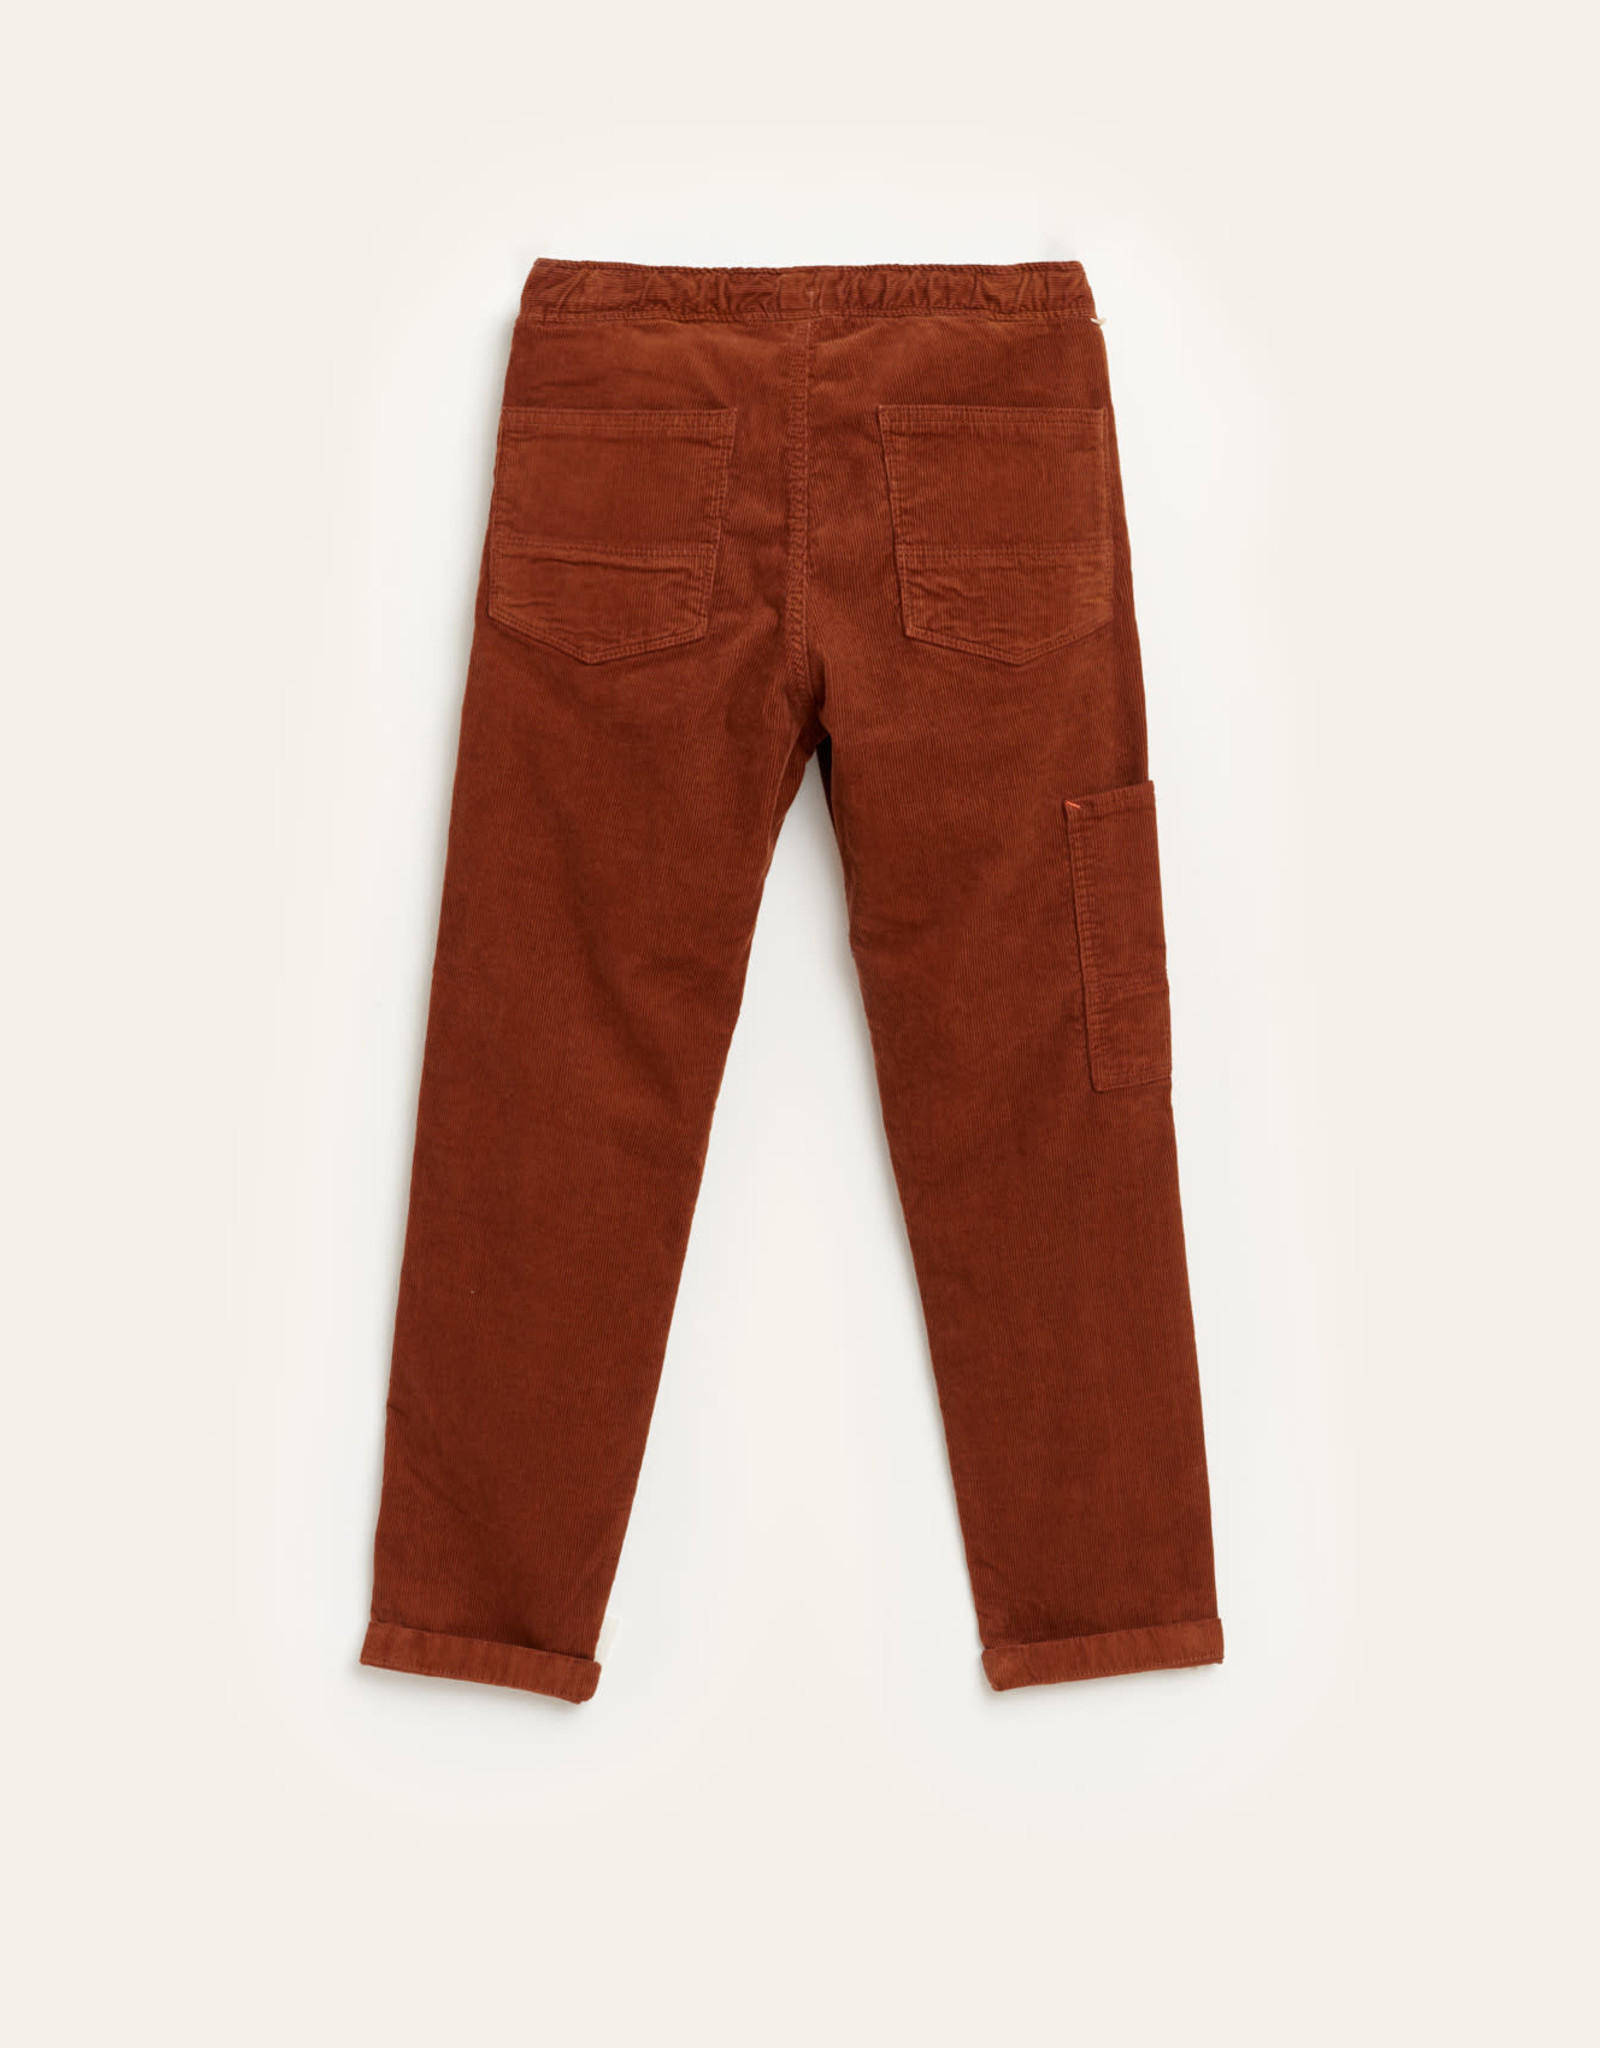 BELLEROSE Painter02 Brown Sugar